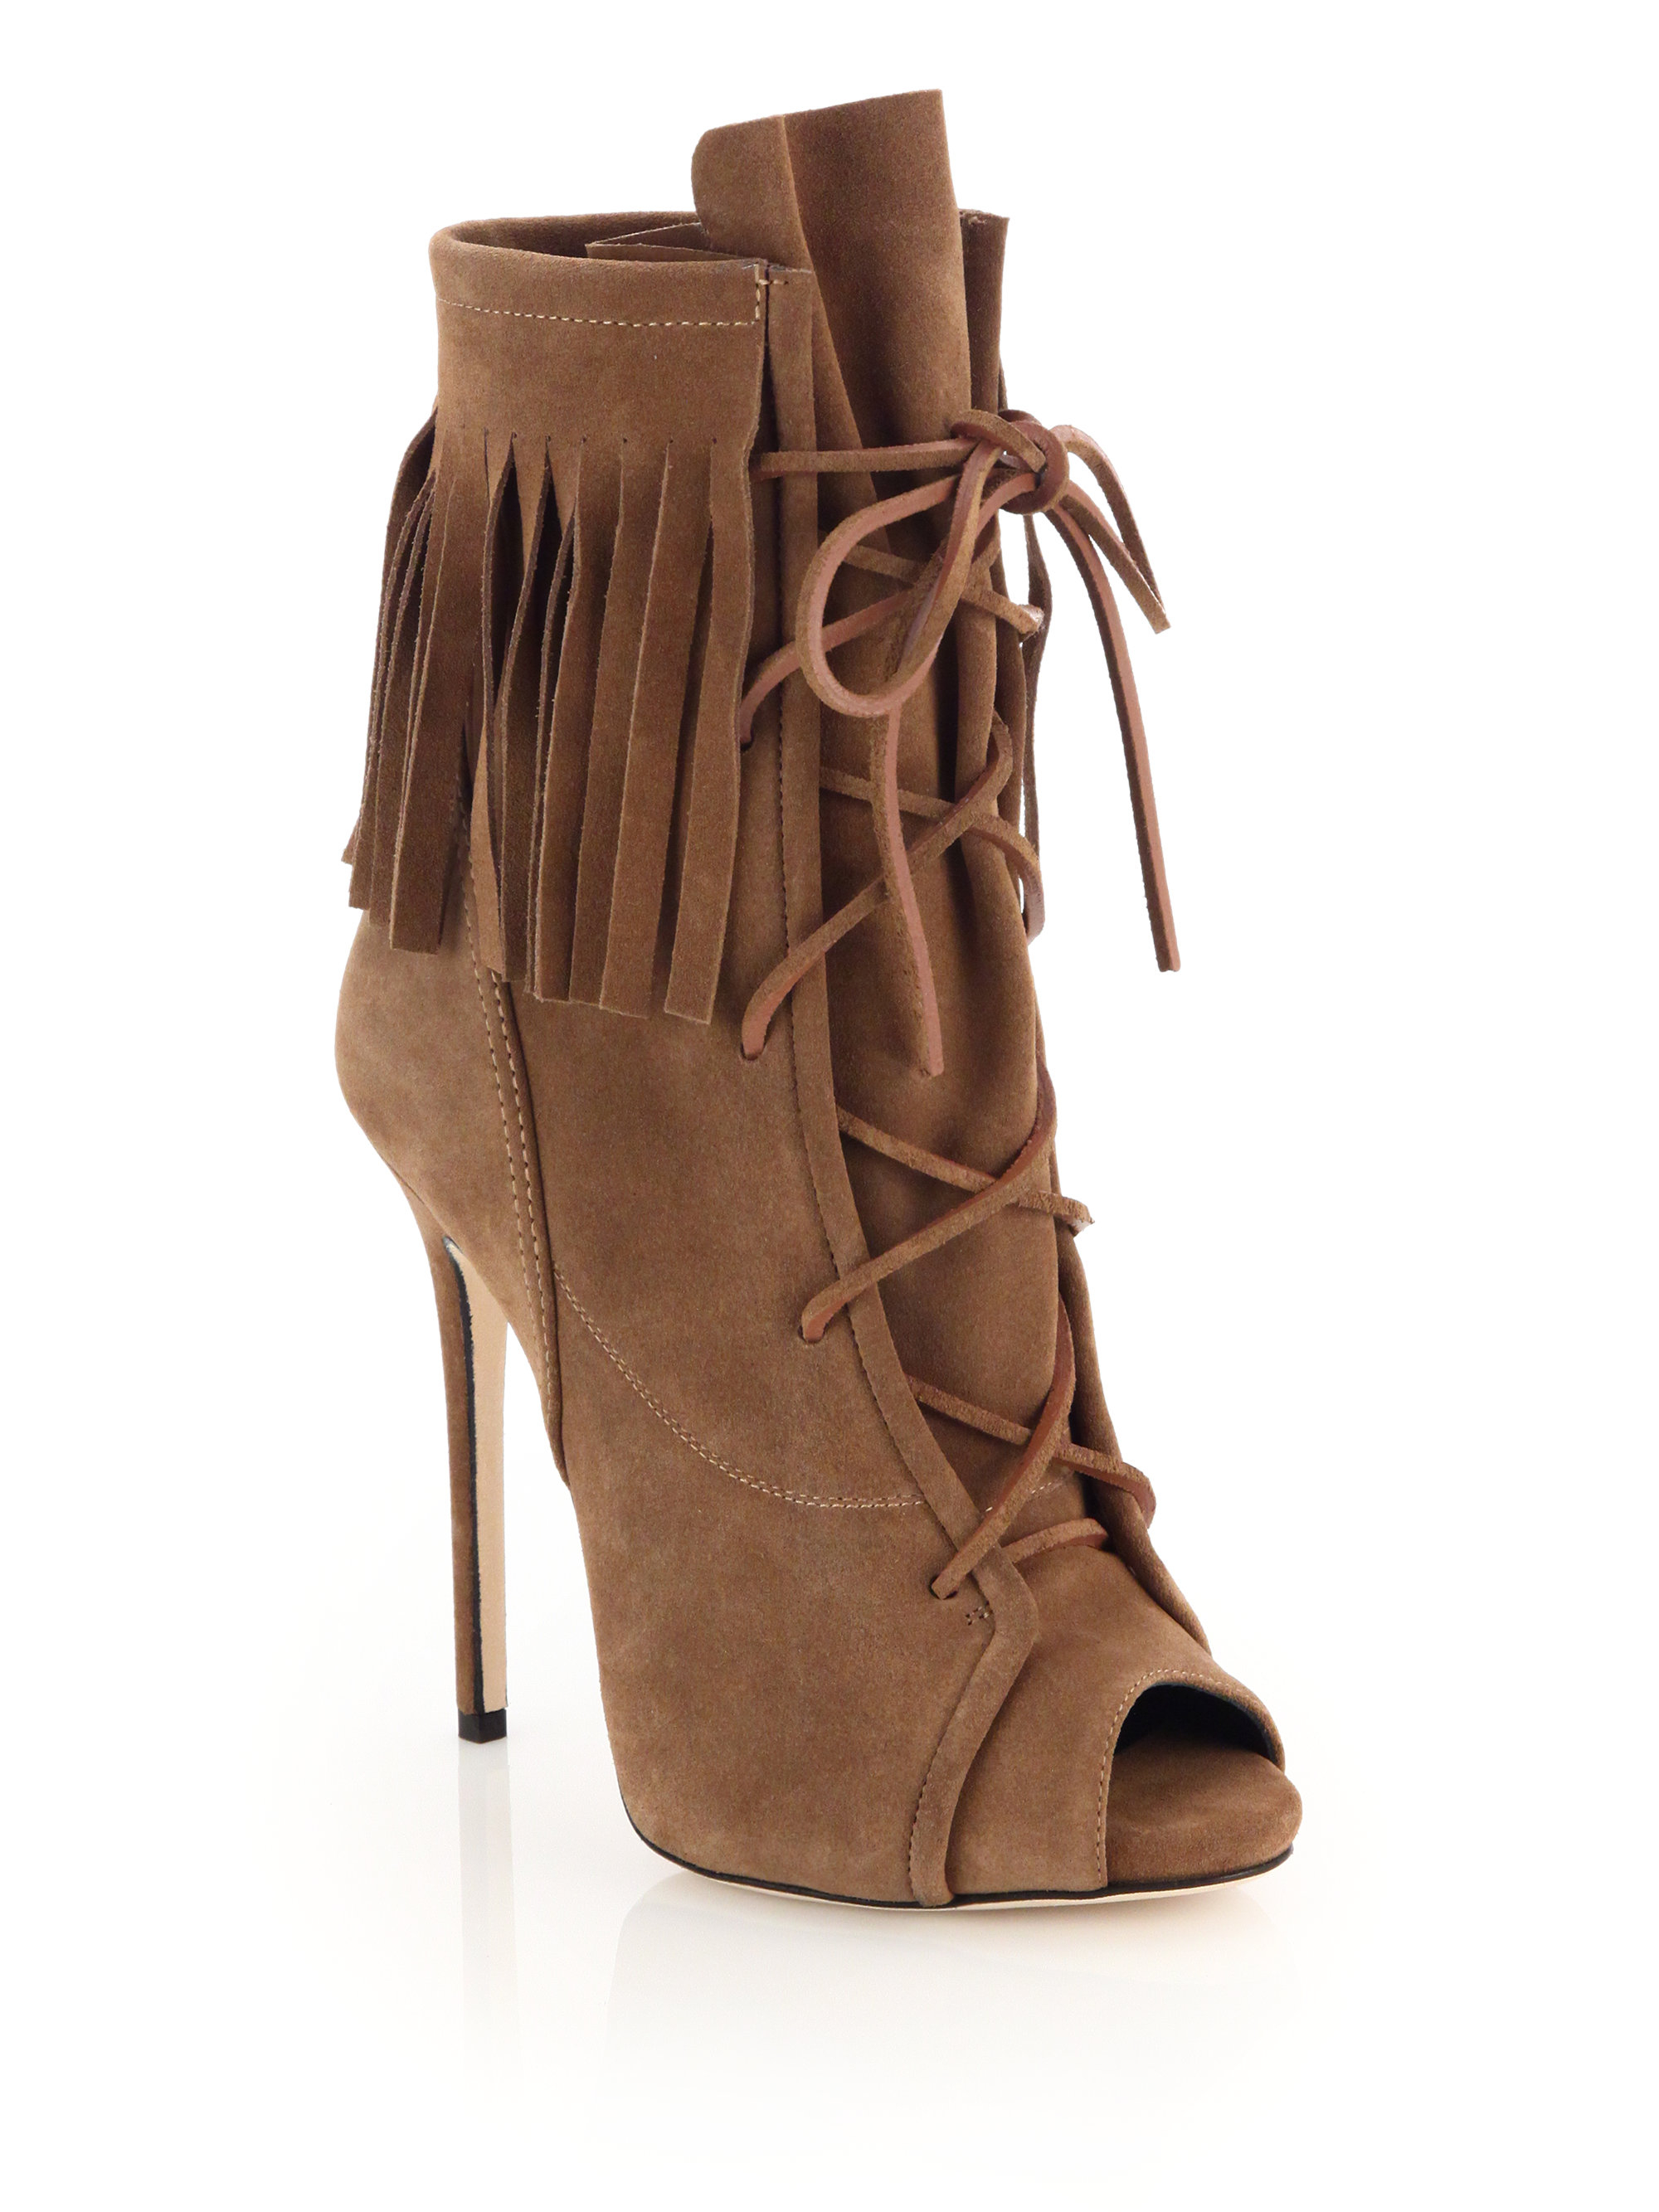 Giuseppe zanotti Fringed Suede Lace-up Peep-toe Booties in Brown ...